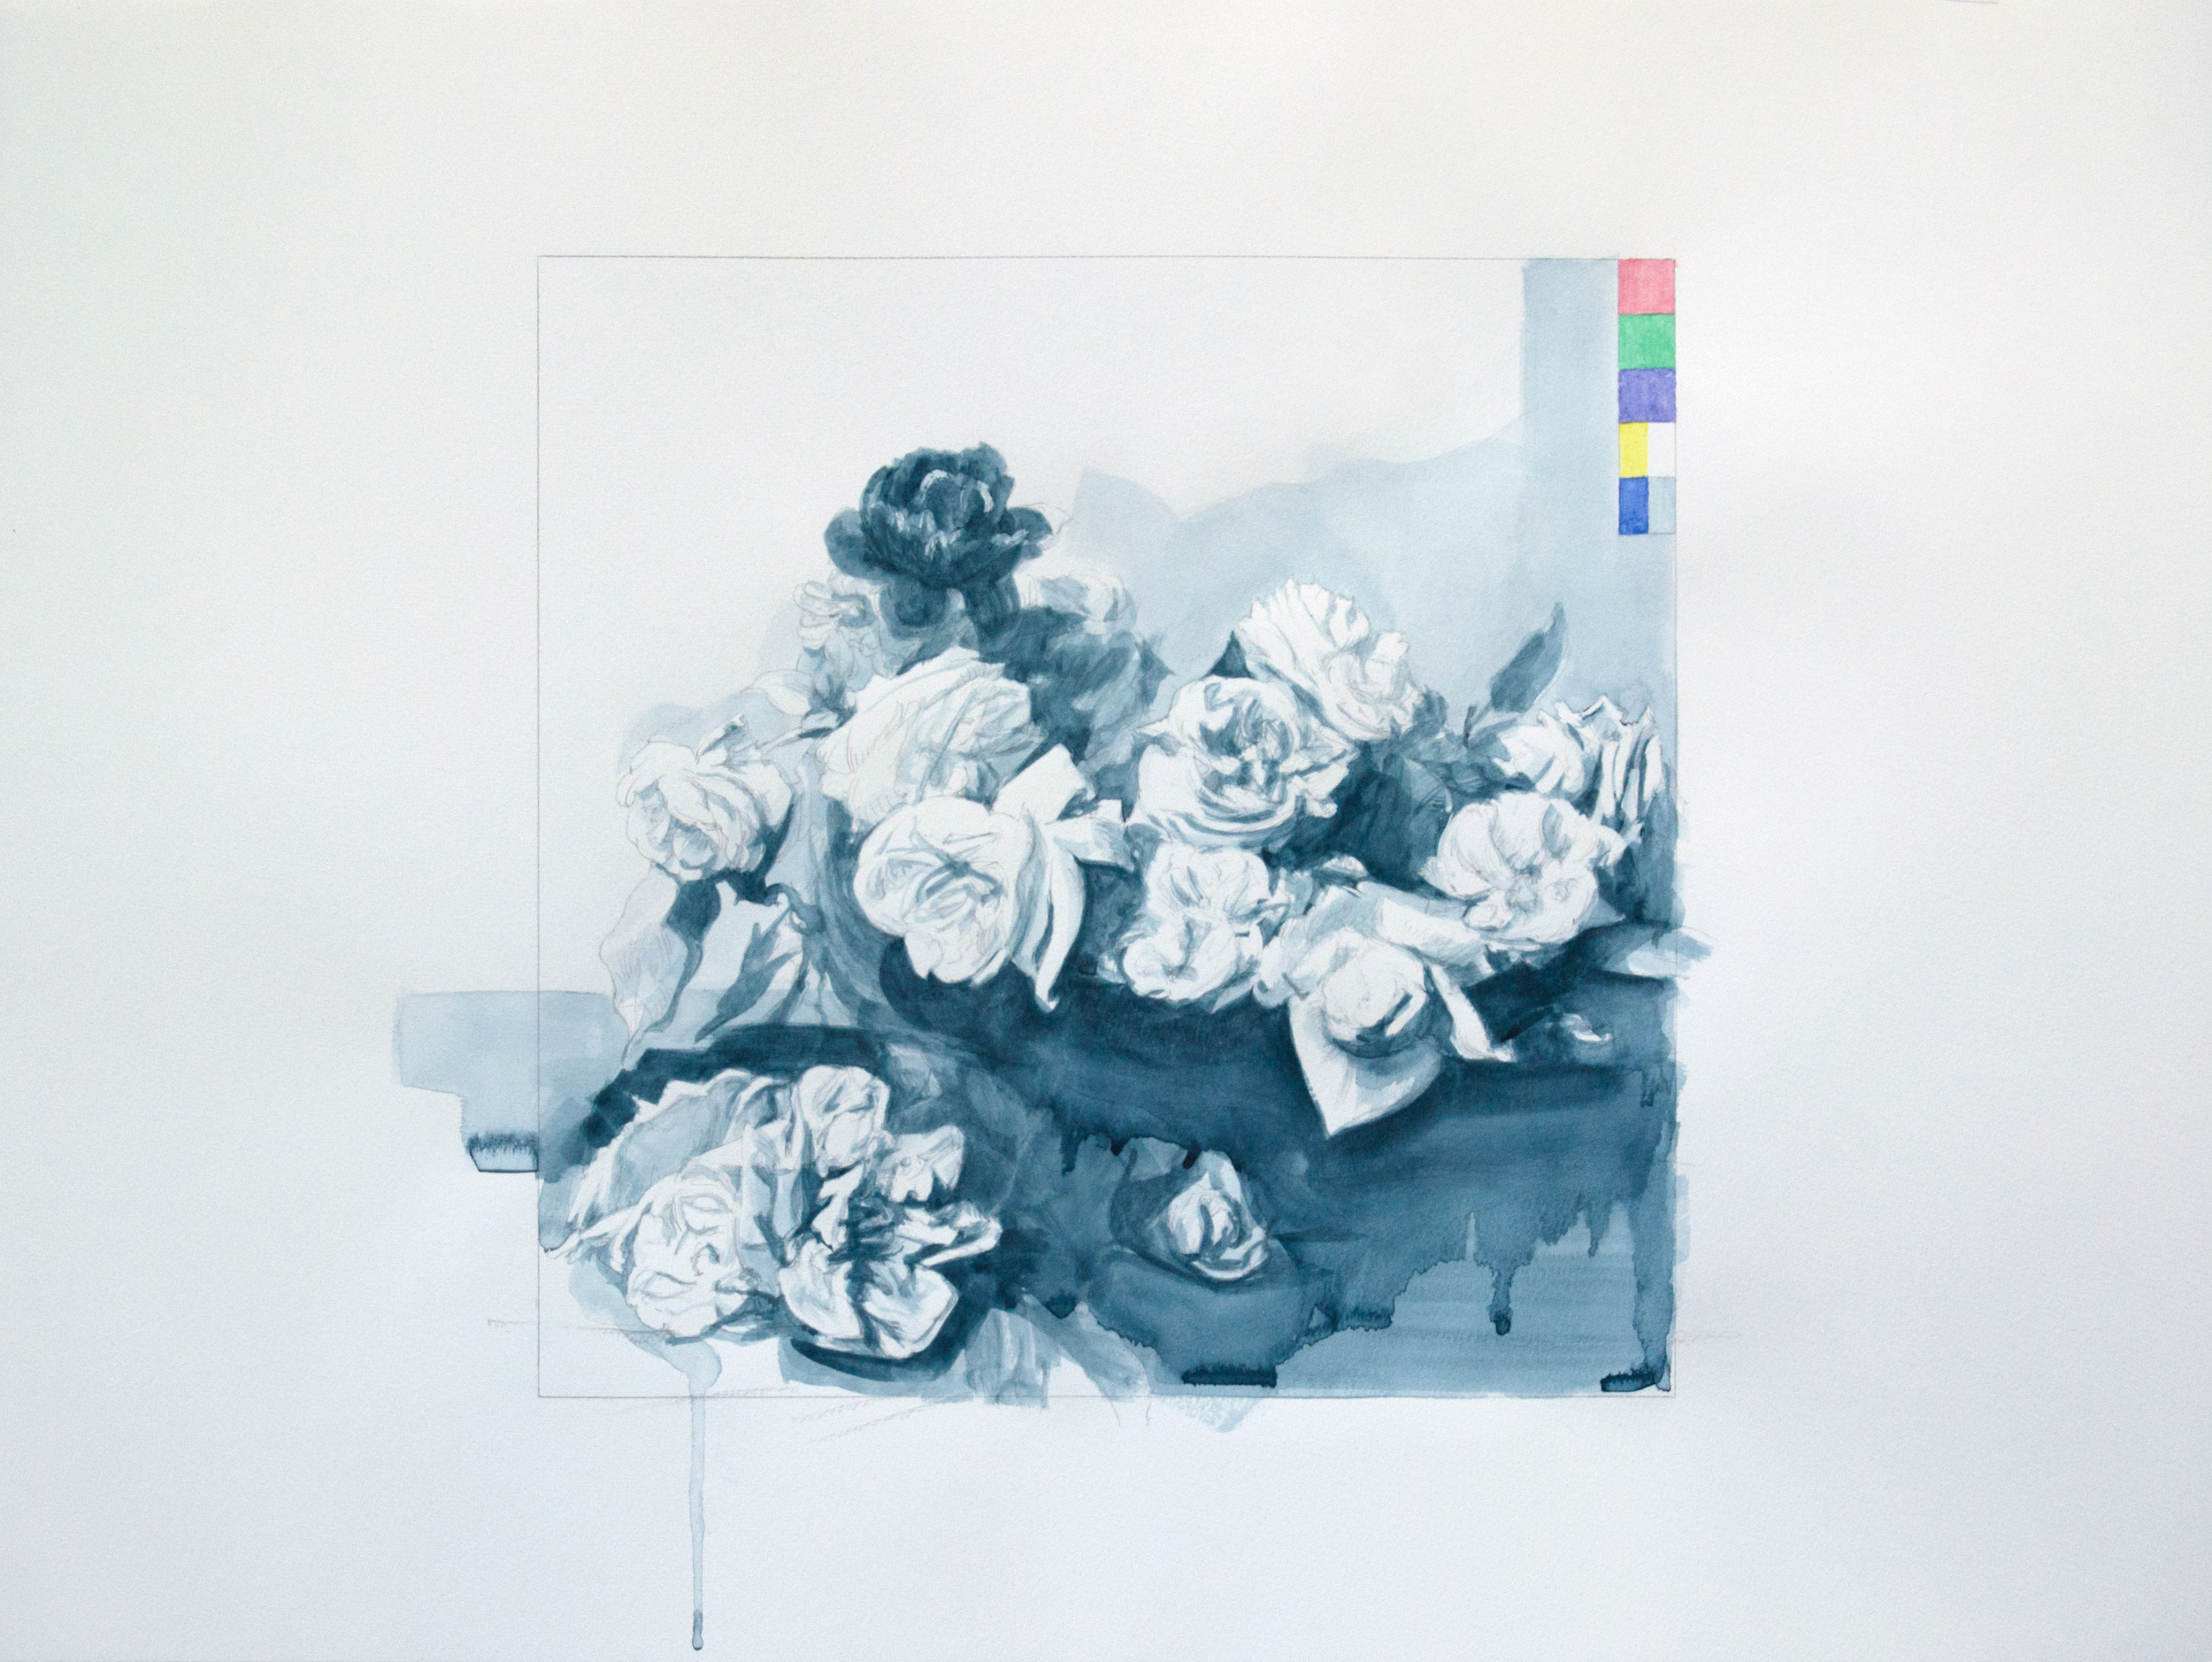 Power Corruption and Lies #18